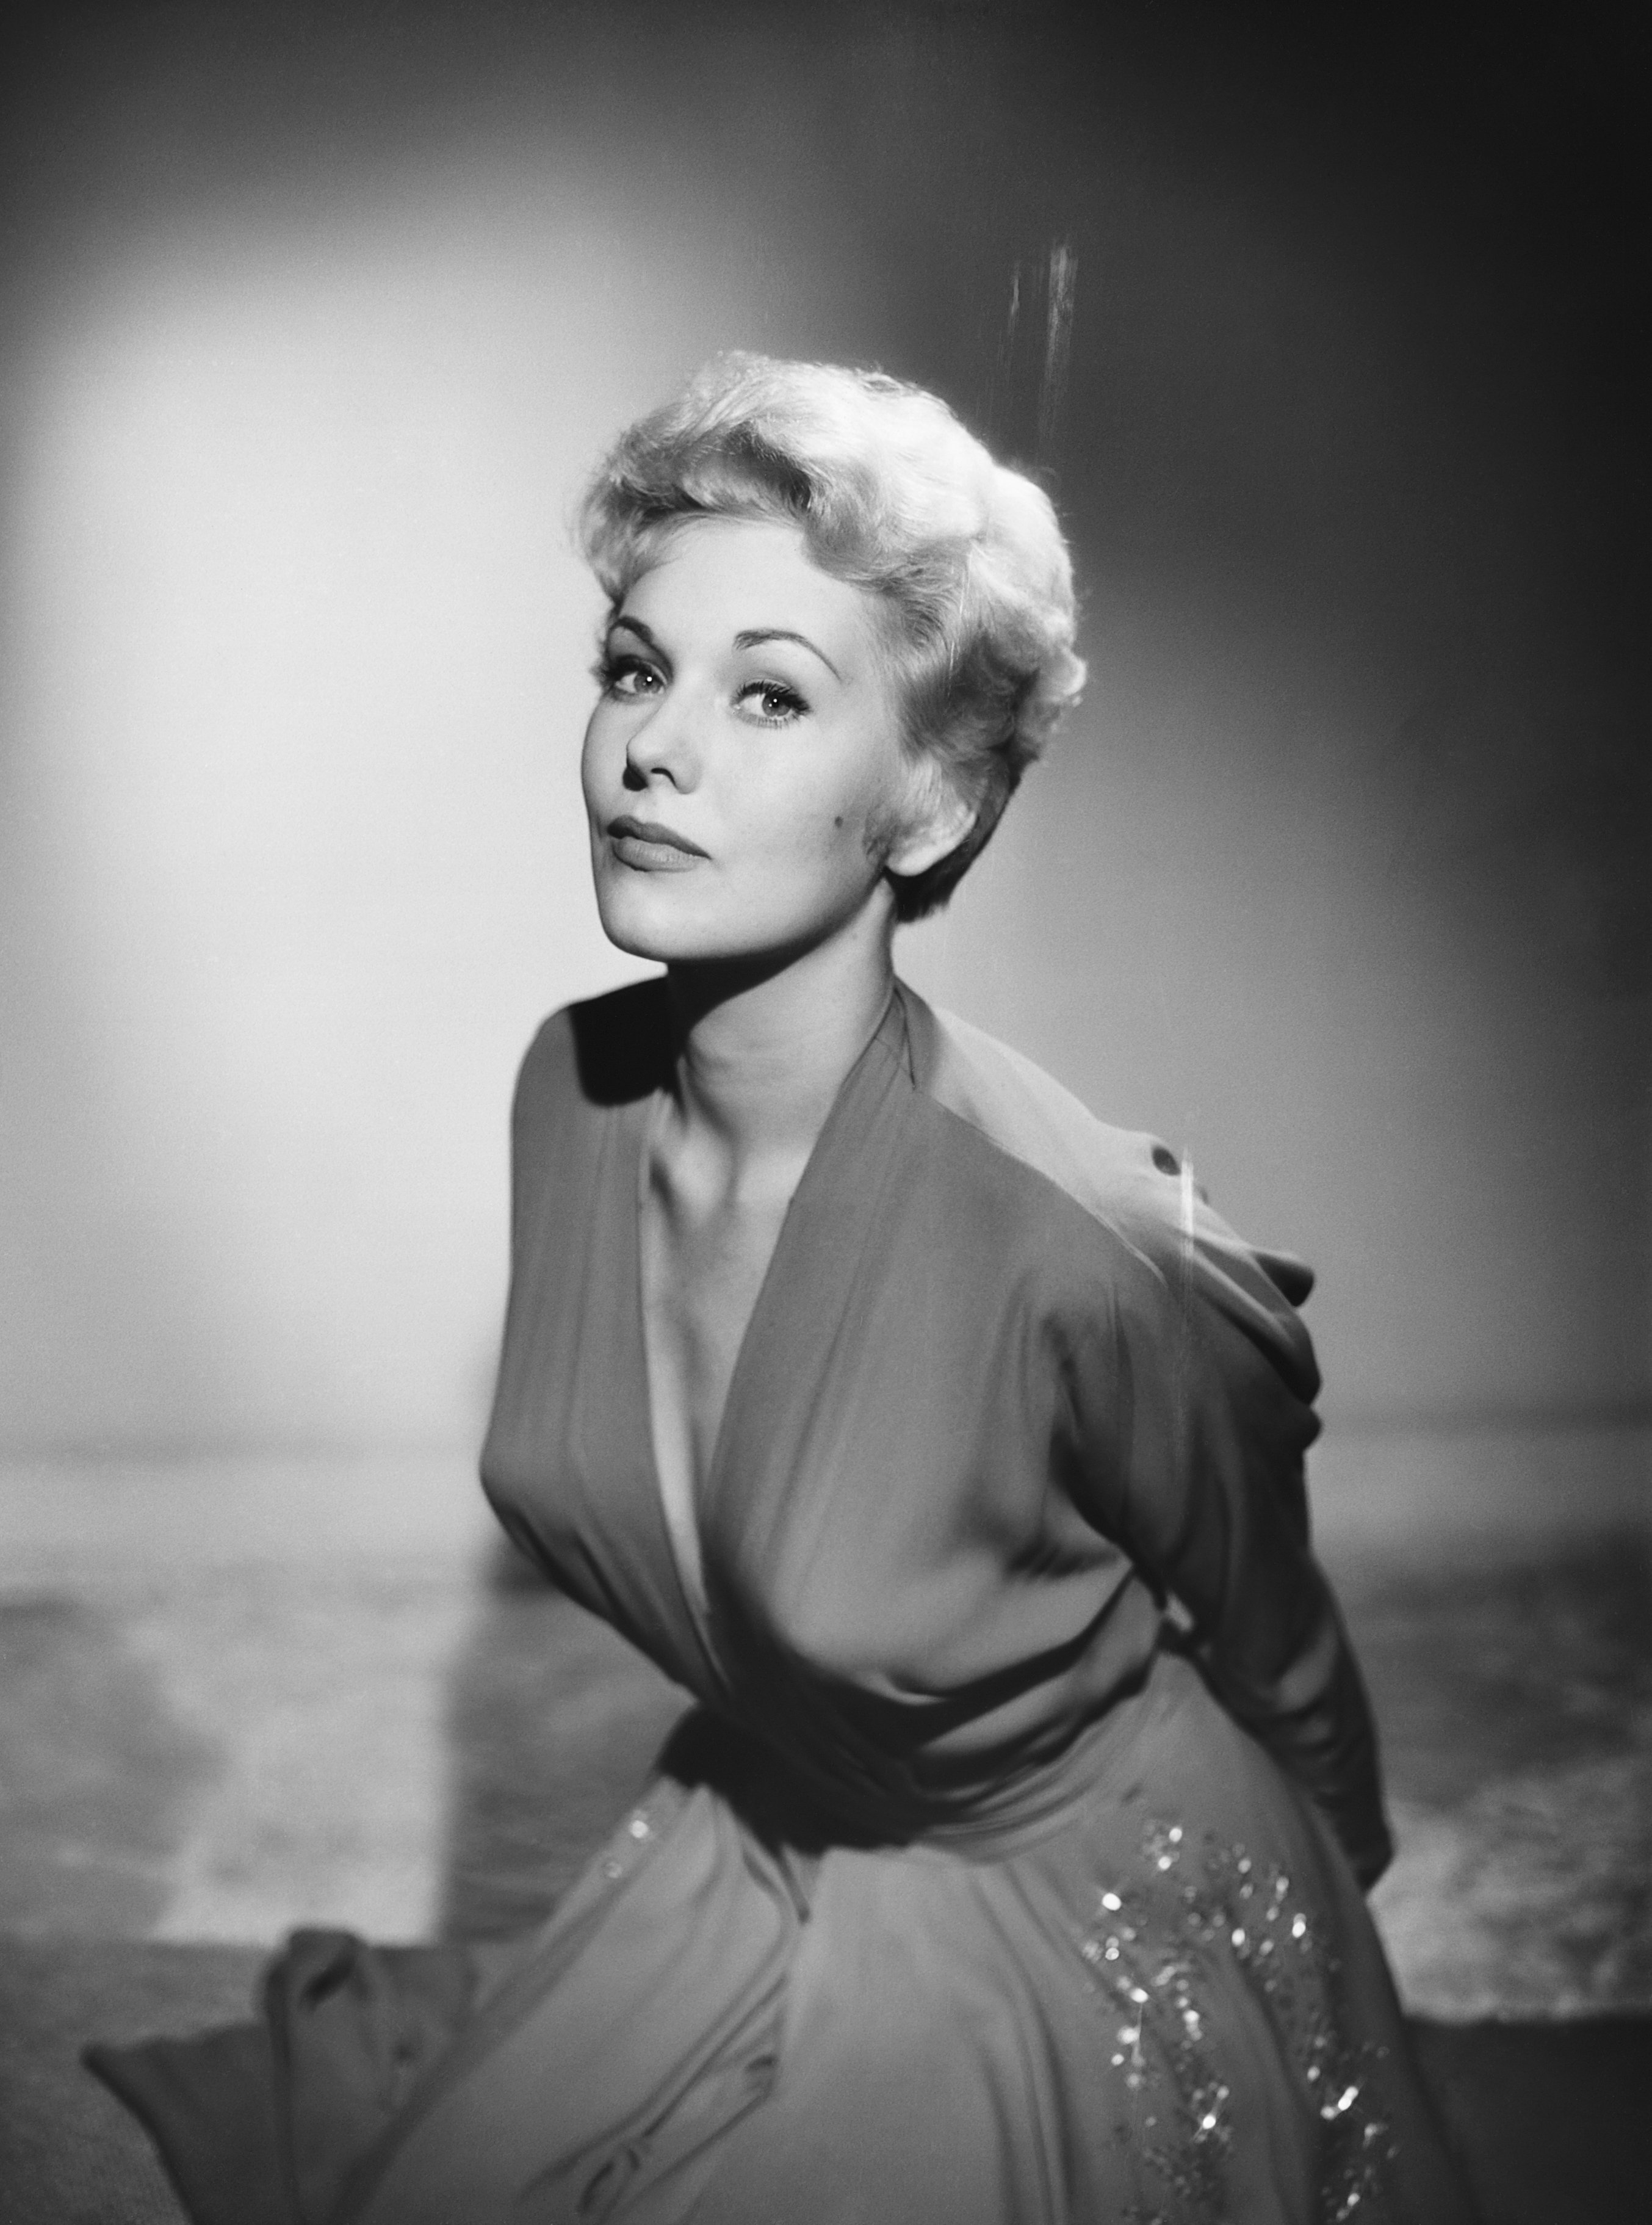 Kim Novak photographed by Baron, 1954.| Source: Getty Images